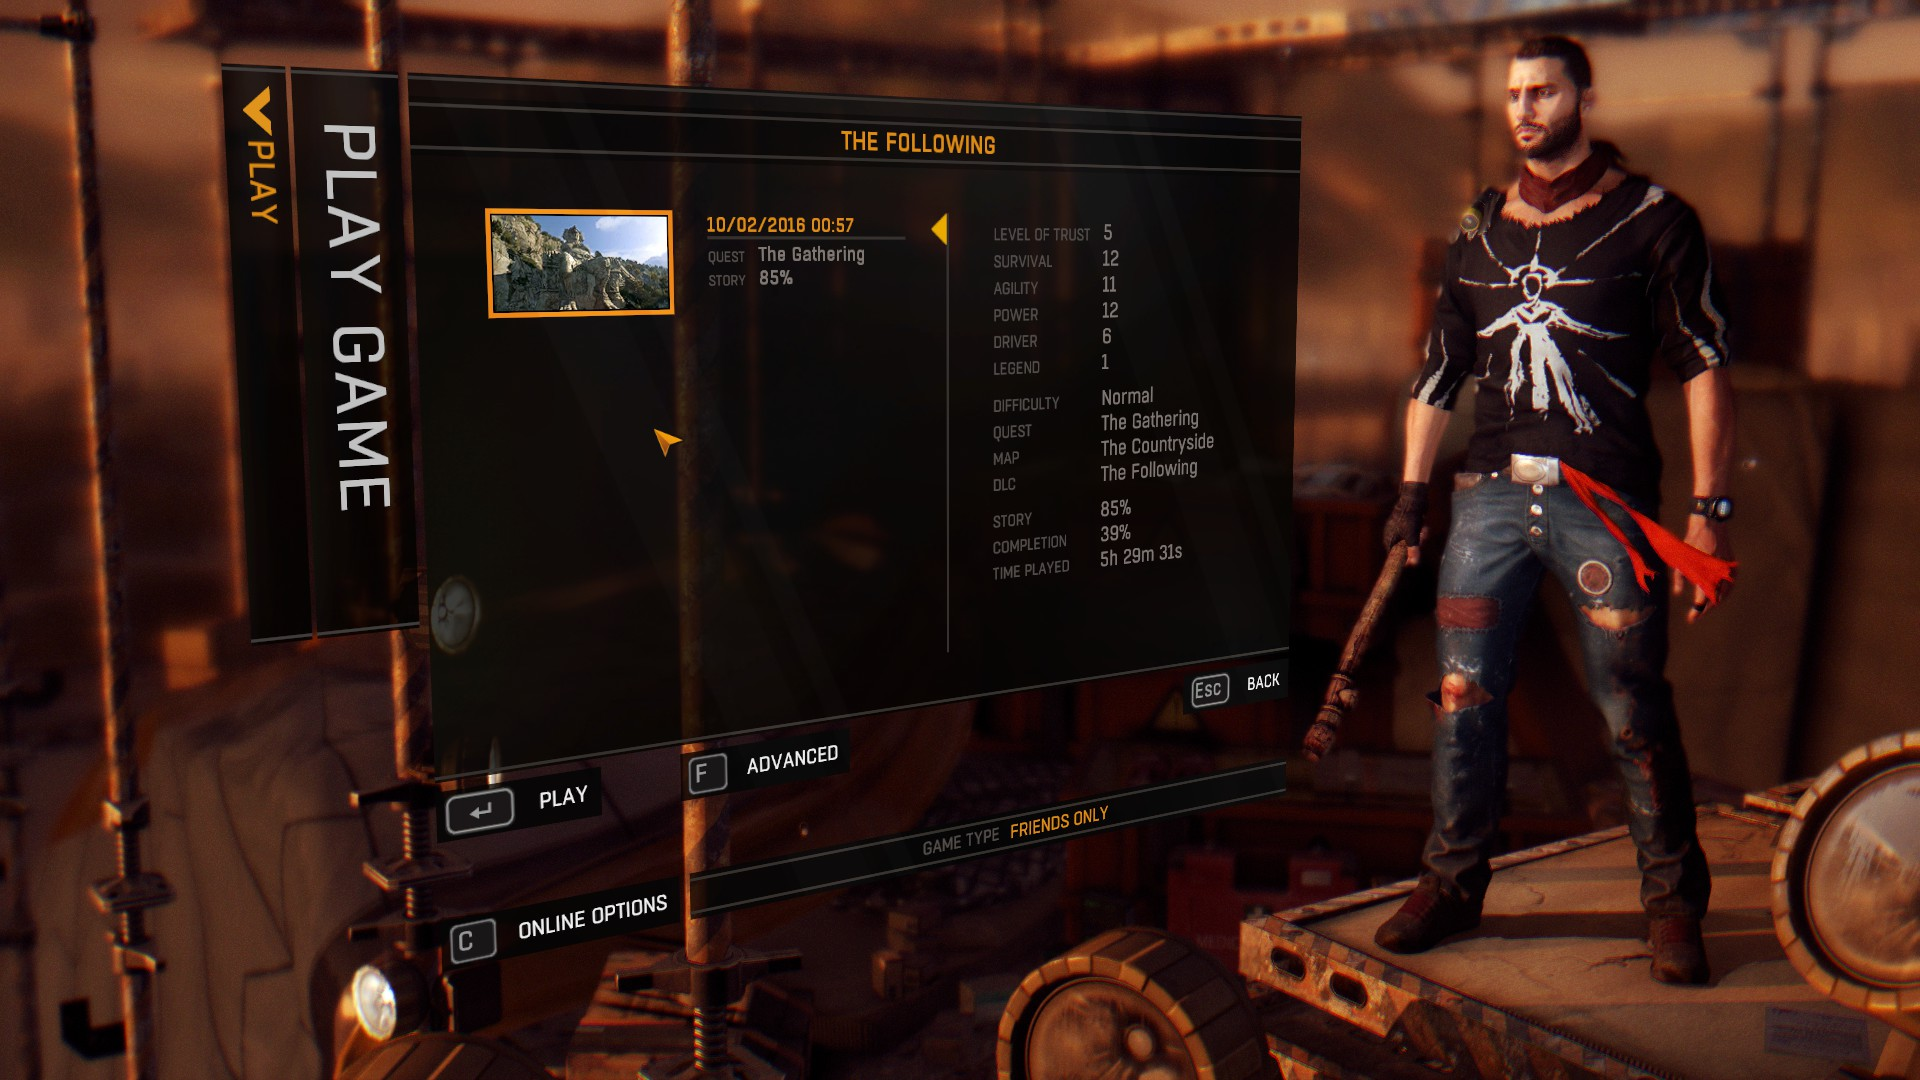 How to Start Dying Light: The Following DLC | Shacknews